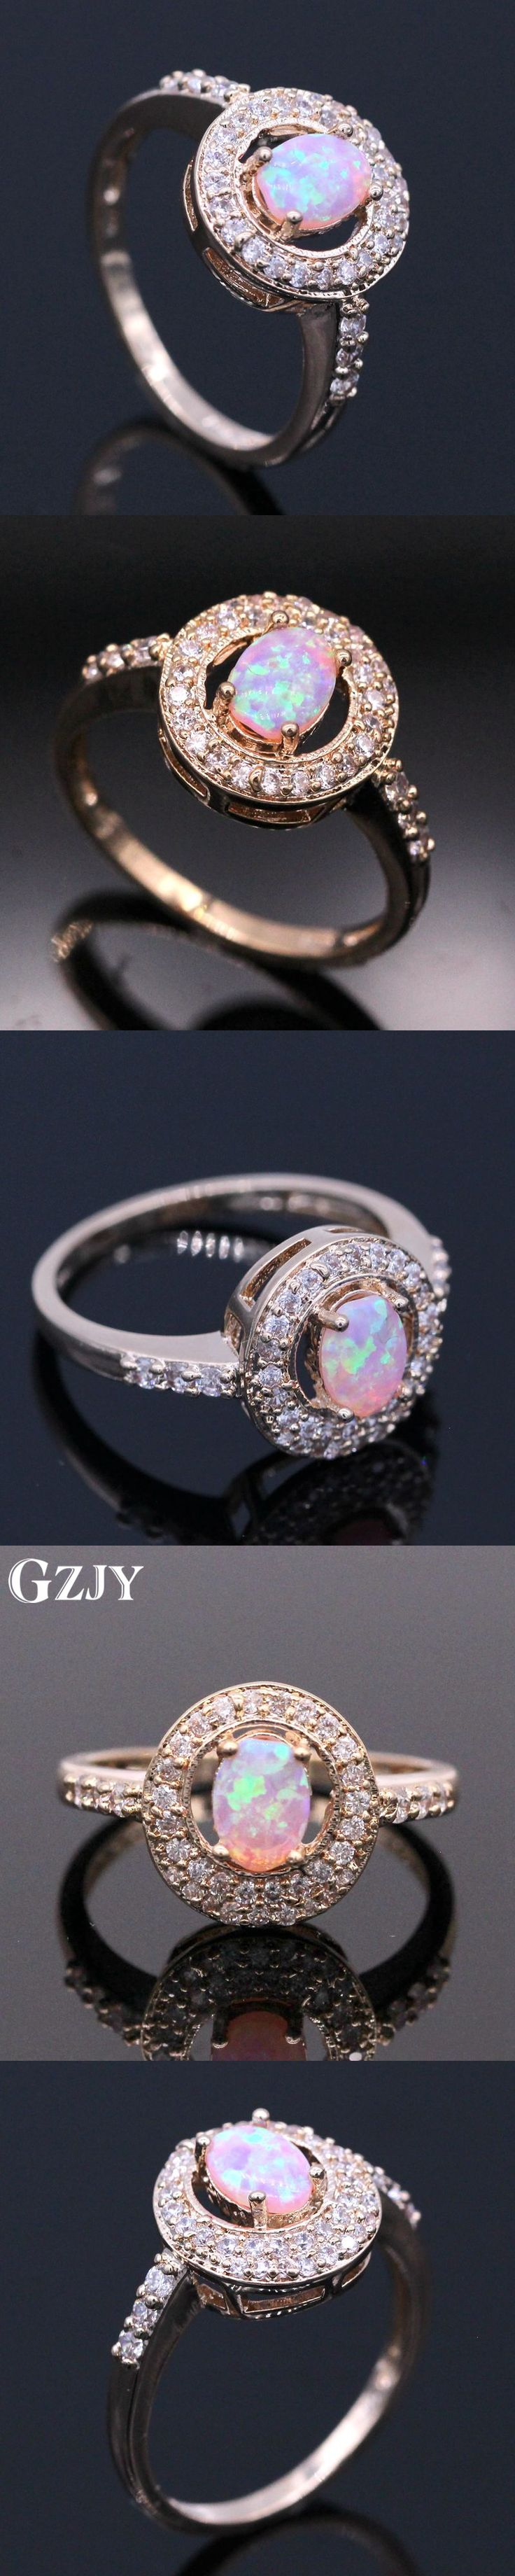 GZJY Fashion Jewelry Pink Fire Opal Cubic Zirconia Female Ring Bijoux Wedding Champagne Gold Color Wedding Rings For Women